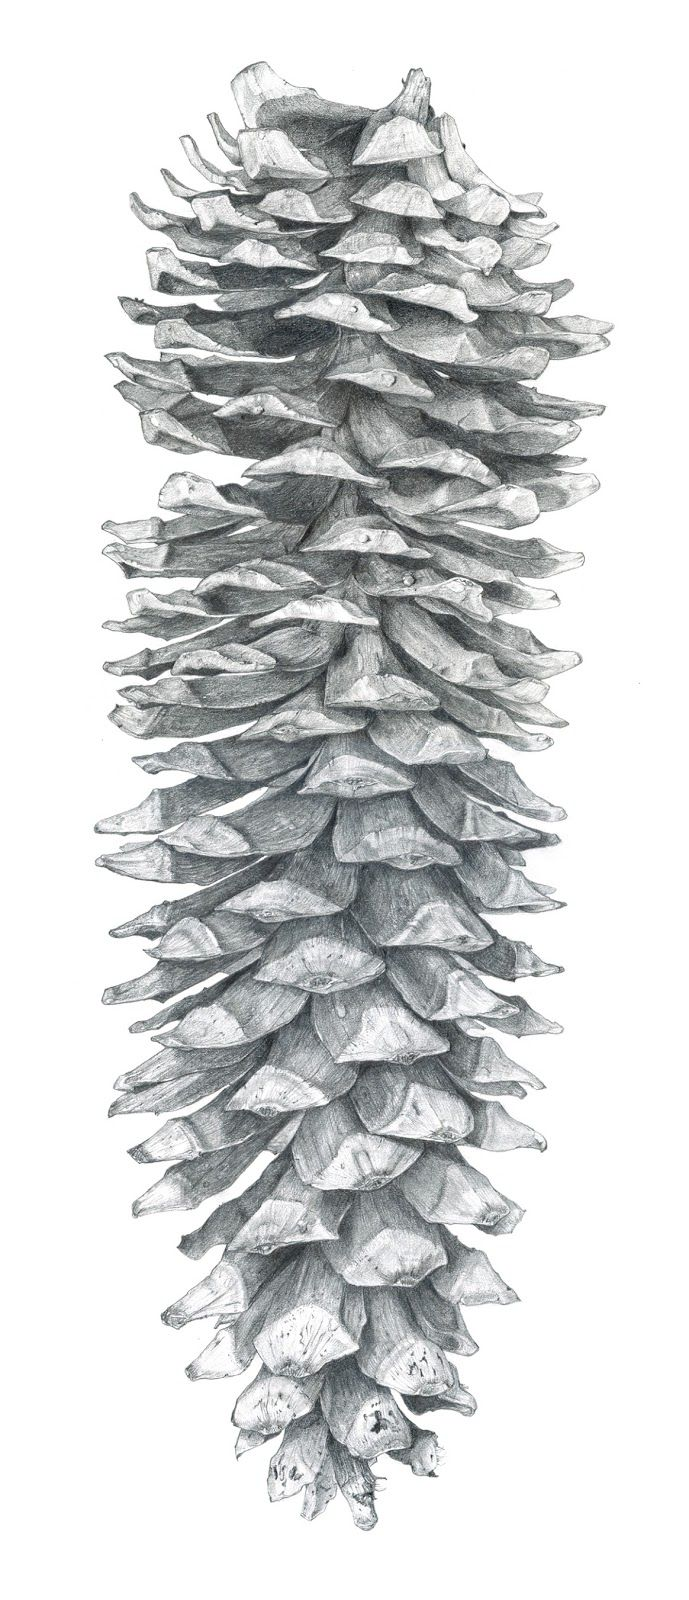 Sarah Melling: Pencils and Paper: Sugar Pine Cone - Finished drawing ...